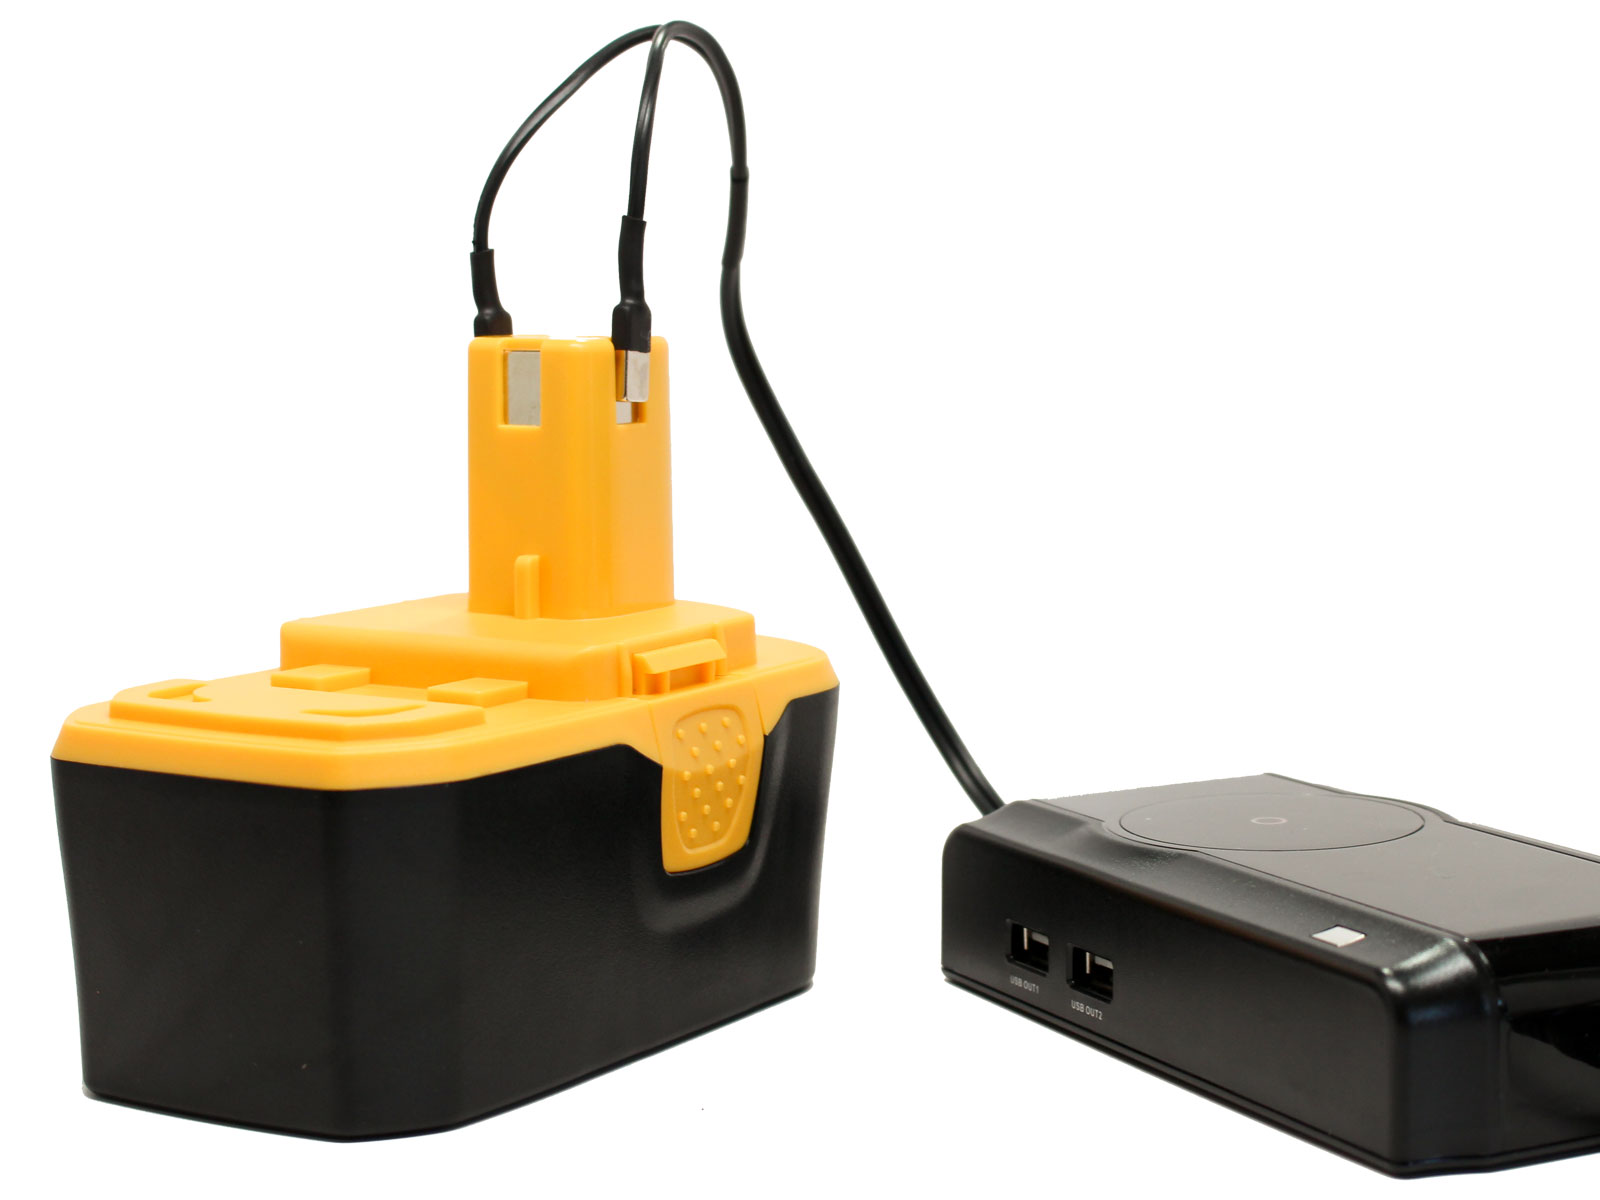 6v Nimh Battery Charger6v 250ma Nicd Usb Charger For How To Build And Circuit Ryobi P501 P600 P521 P420 P430 18v